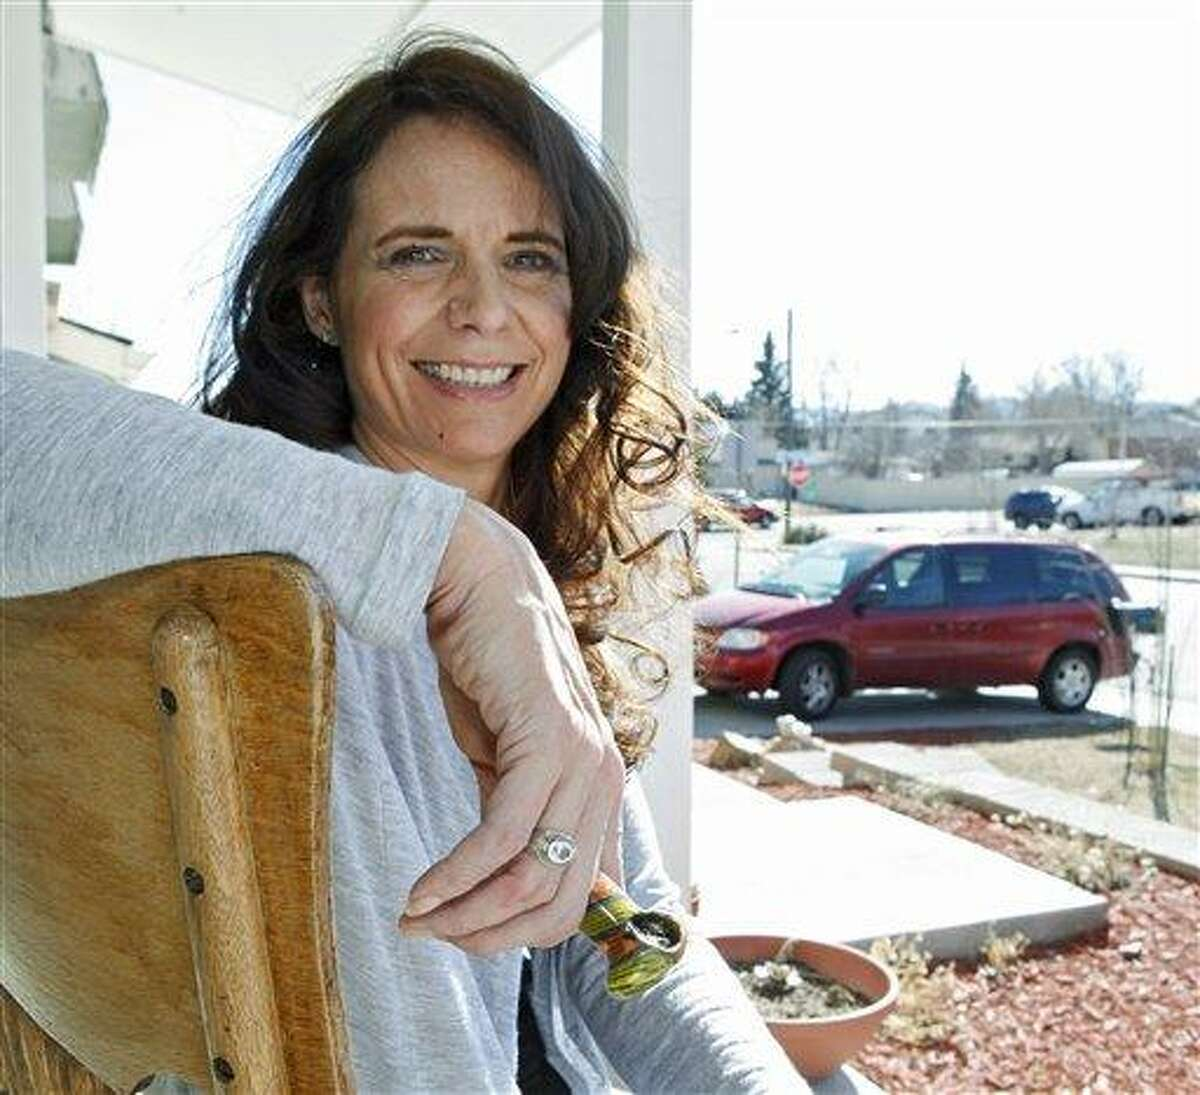 Angeline Chilton a suburban Denver woman with multiple sclerosis who smokes pot twice a day to ease tremors, holds her pipe March 6 as she sits on the front porch of her home in Lakewood, Colo. Chilton insists that she never drives high, but she fears that officials will rush to set an unproven blood-level standard that would put her at risk of breaking the law. In Colorado and Washington, the debate over how to tell whether a driver is high is more than academic. The states are struggling to come up with a blood-level standard for marijuana that would be analogous to the blood-alcohol standard used to decide who's driving drunk. Associated Press